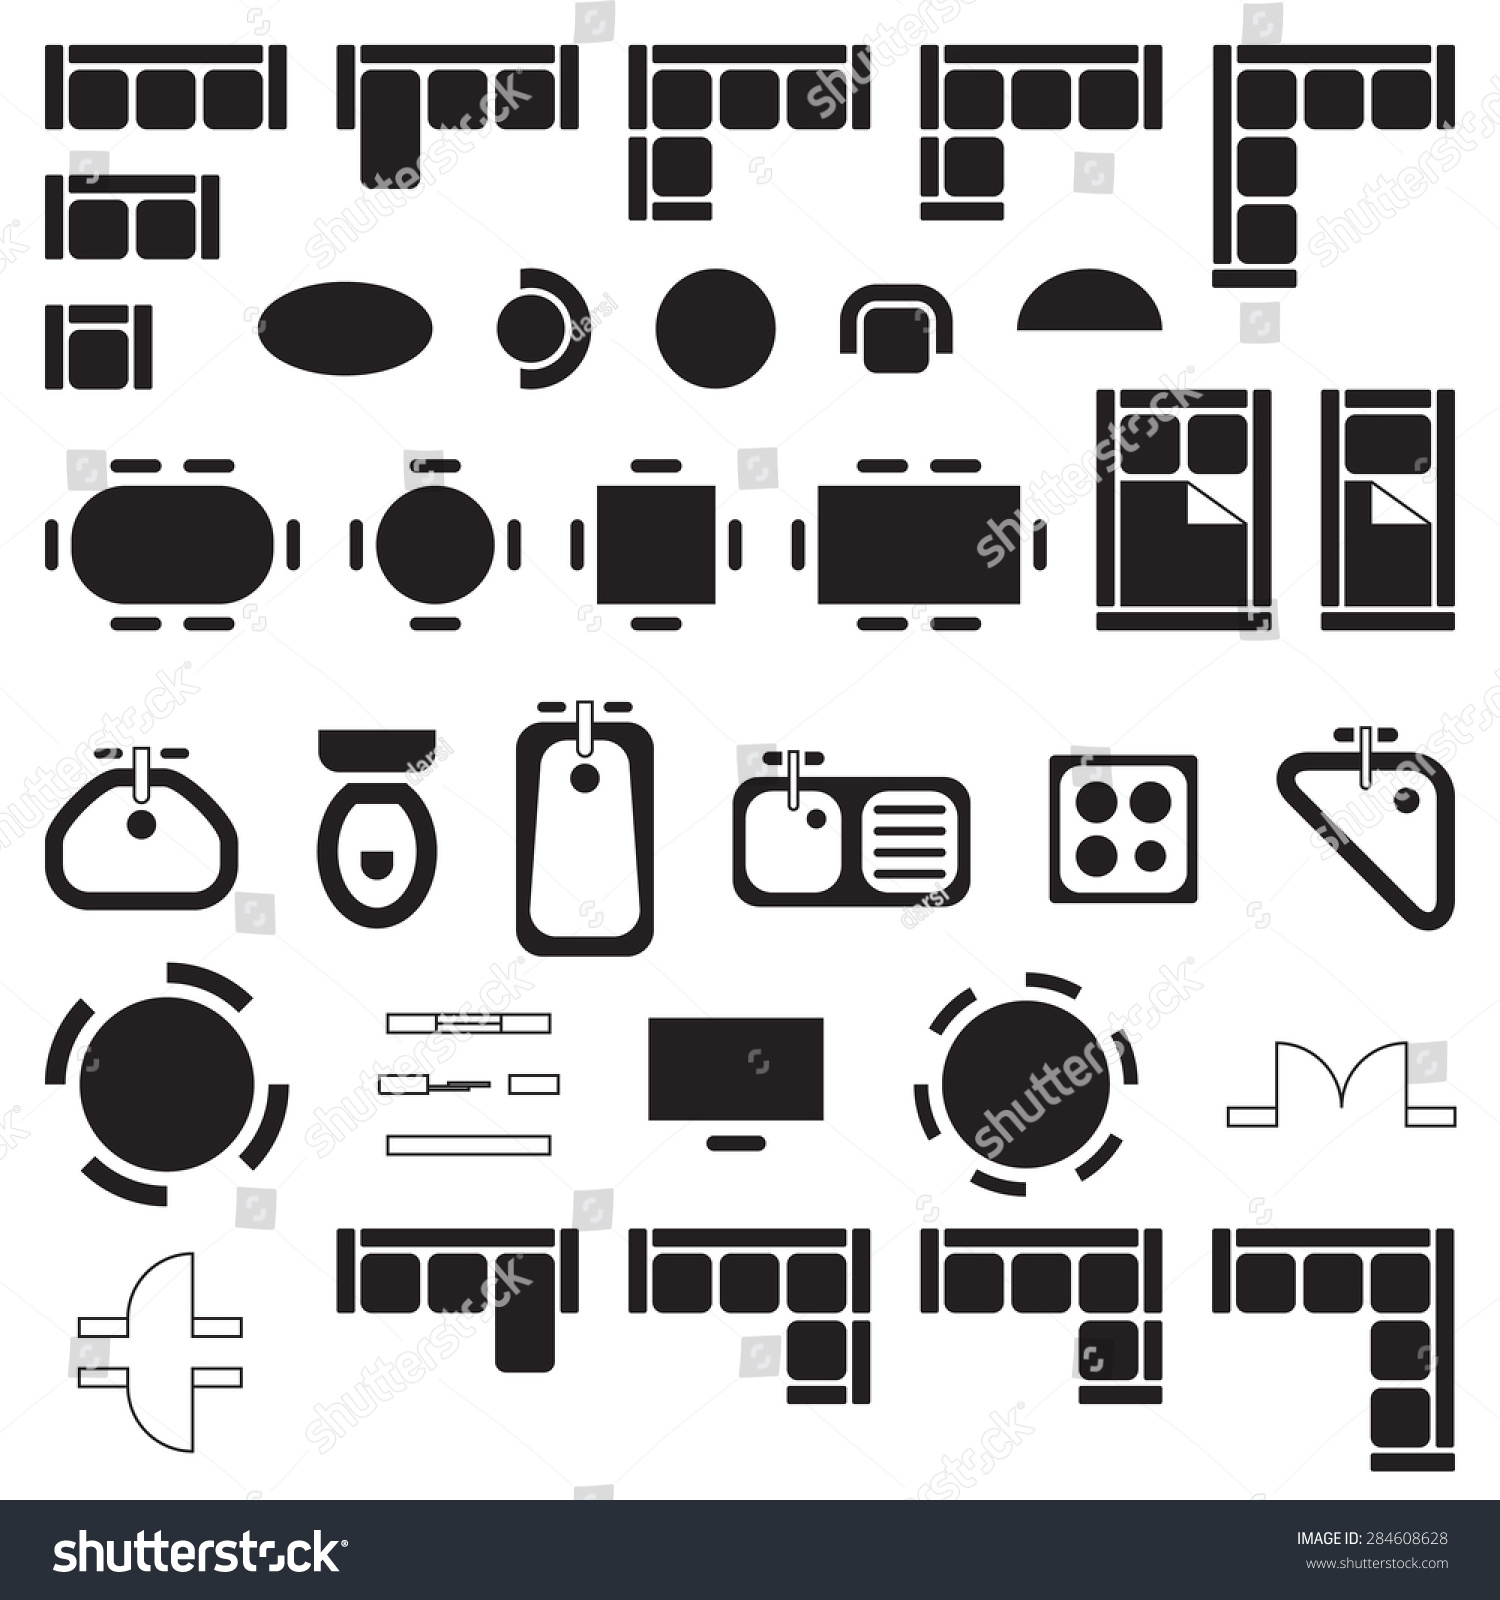 Standard Furniture Symbols Used Architecture Plans Stock